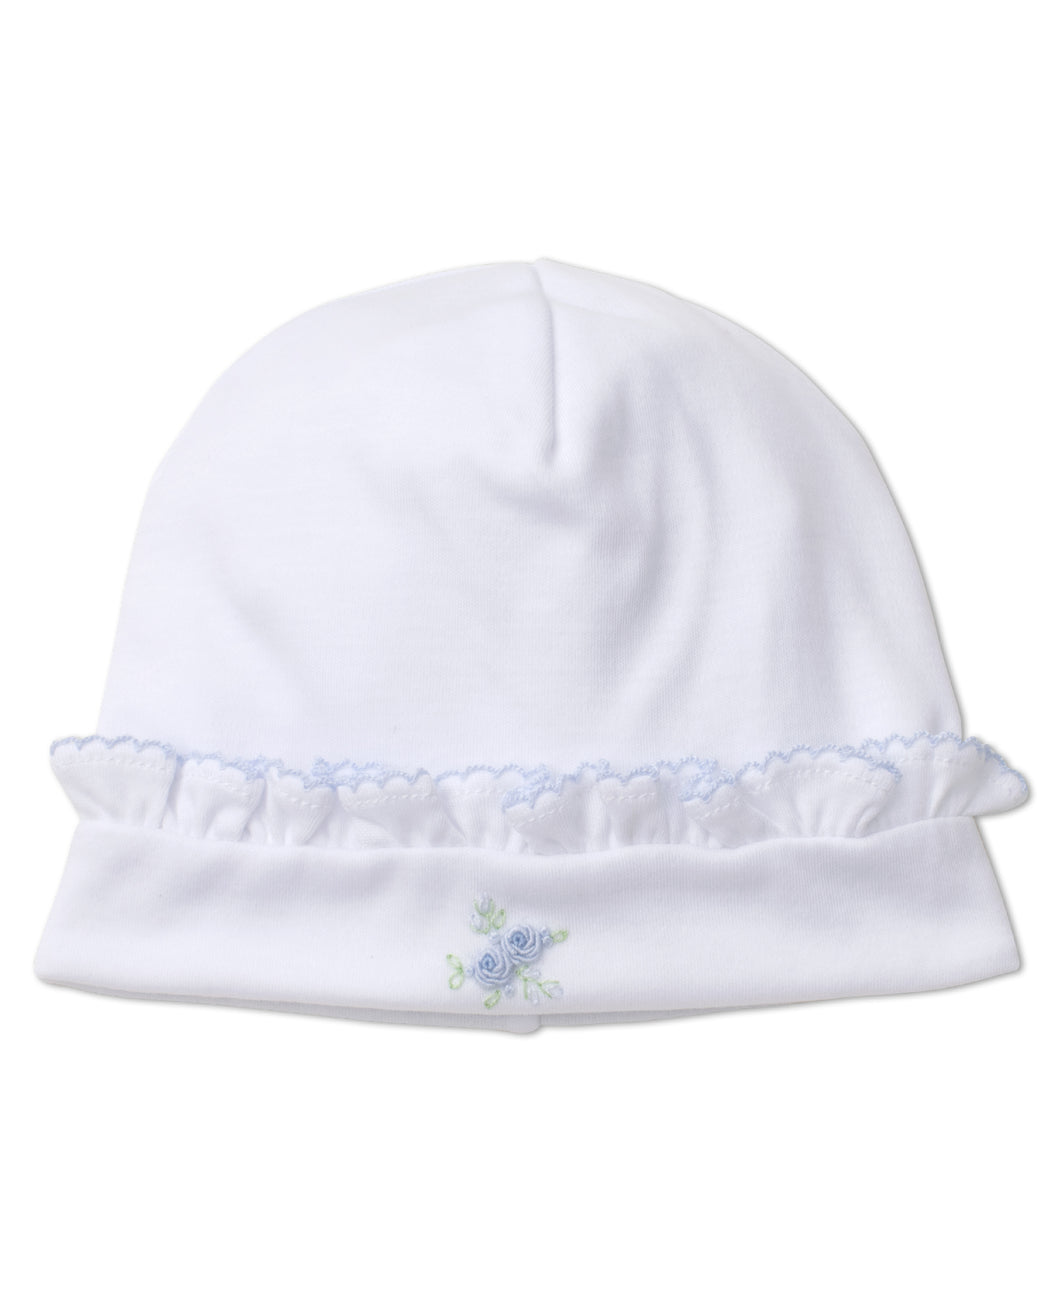 Winter Rosebuds Hat with Hand Emb - Blue